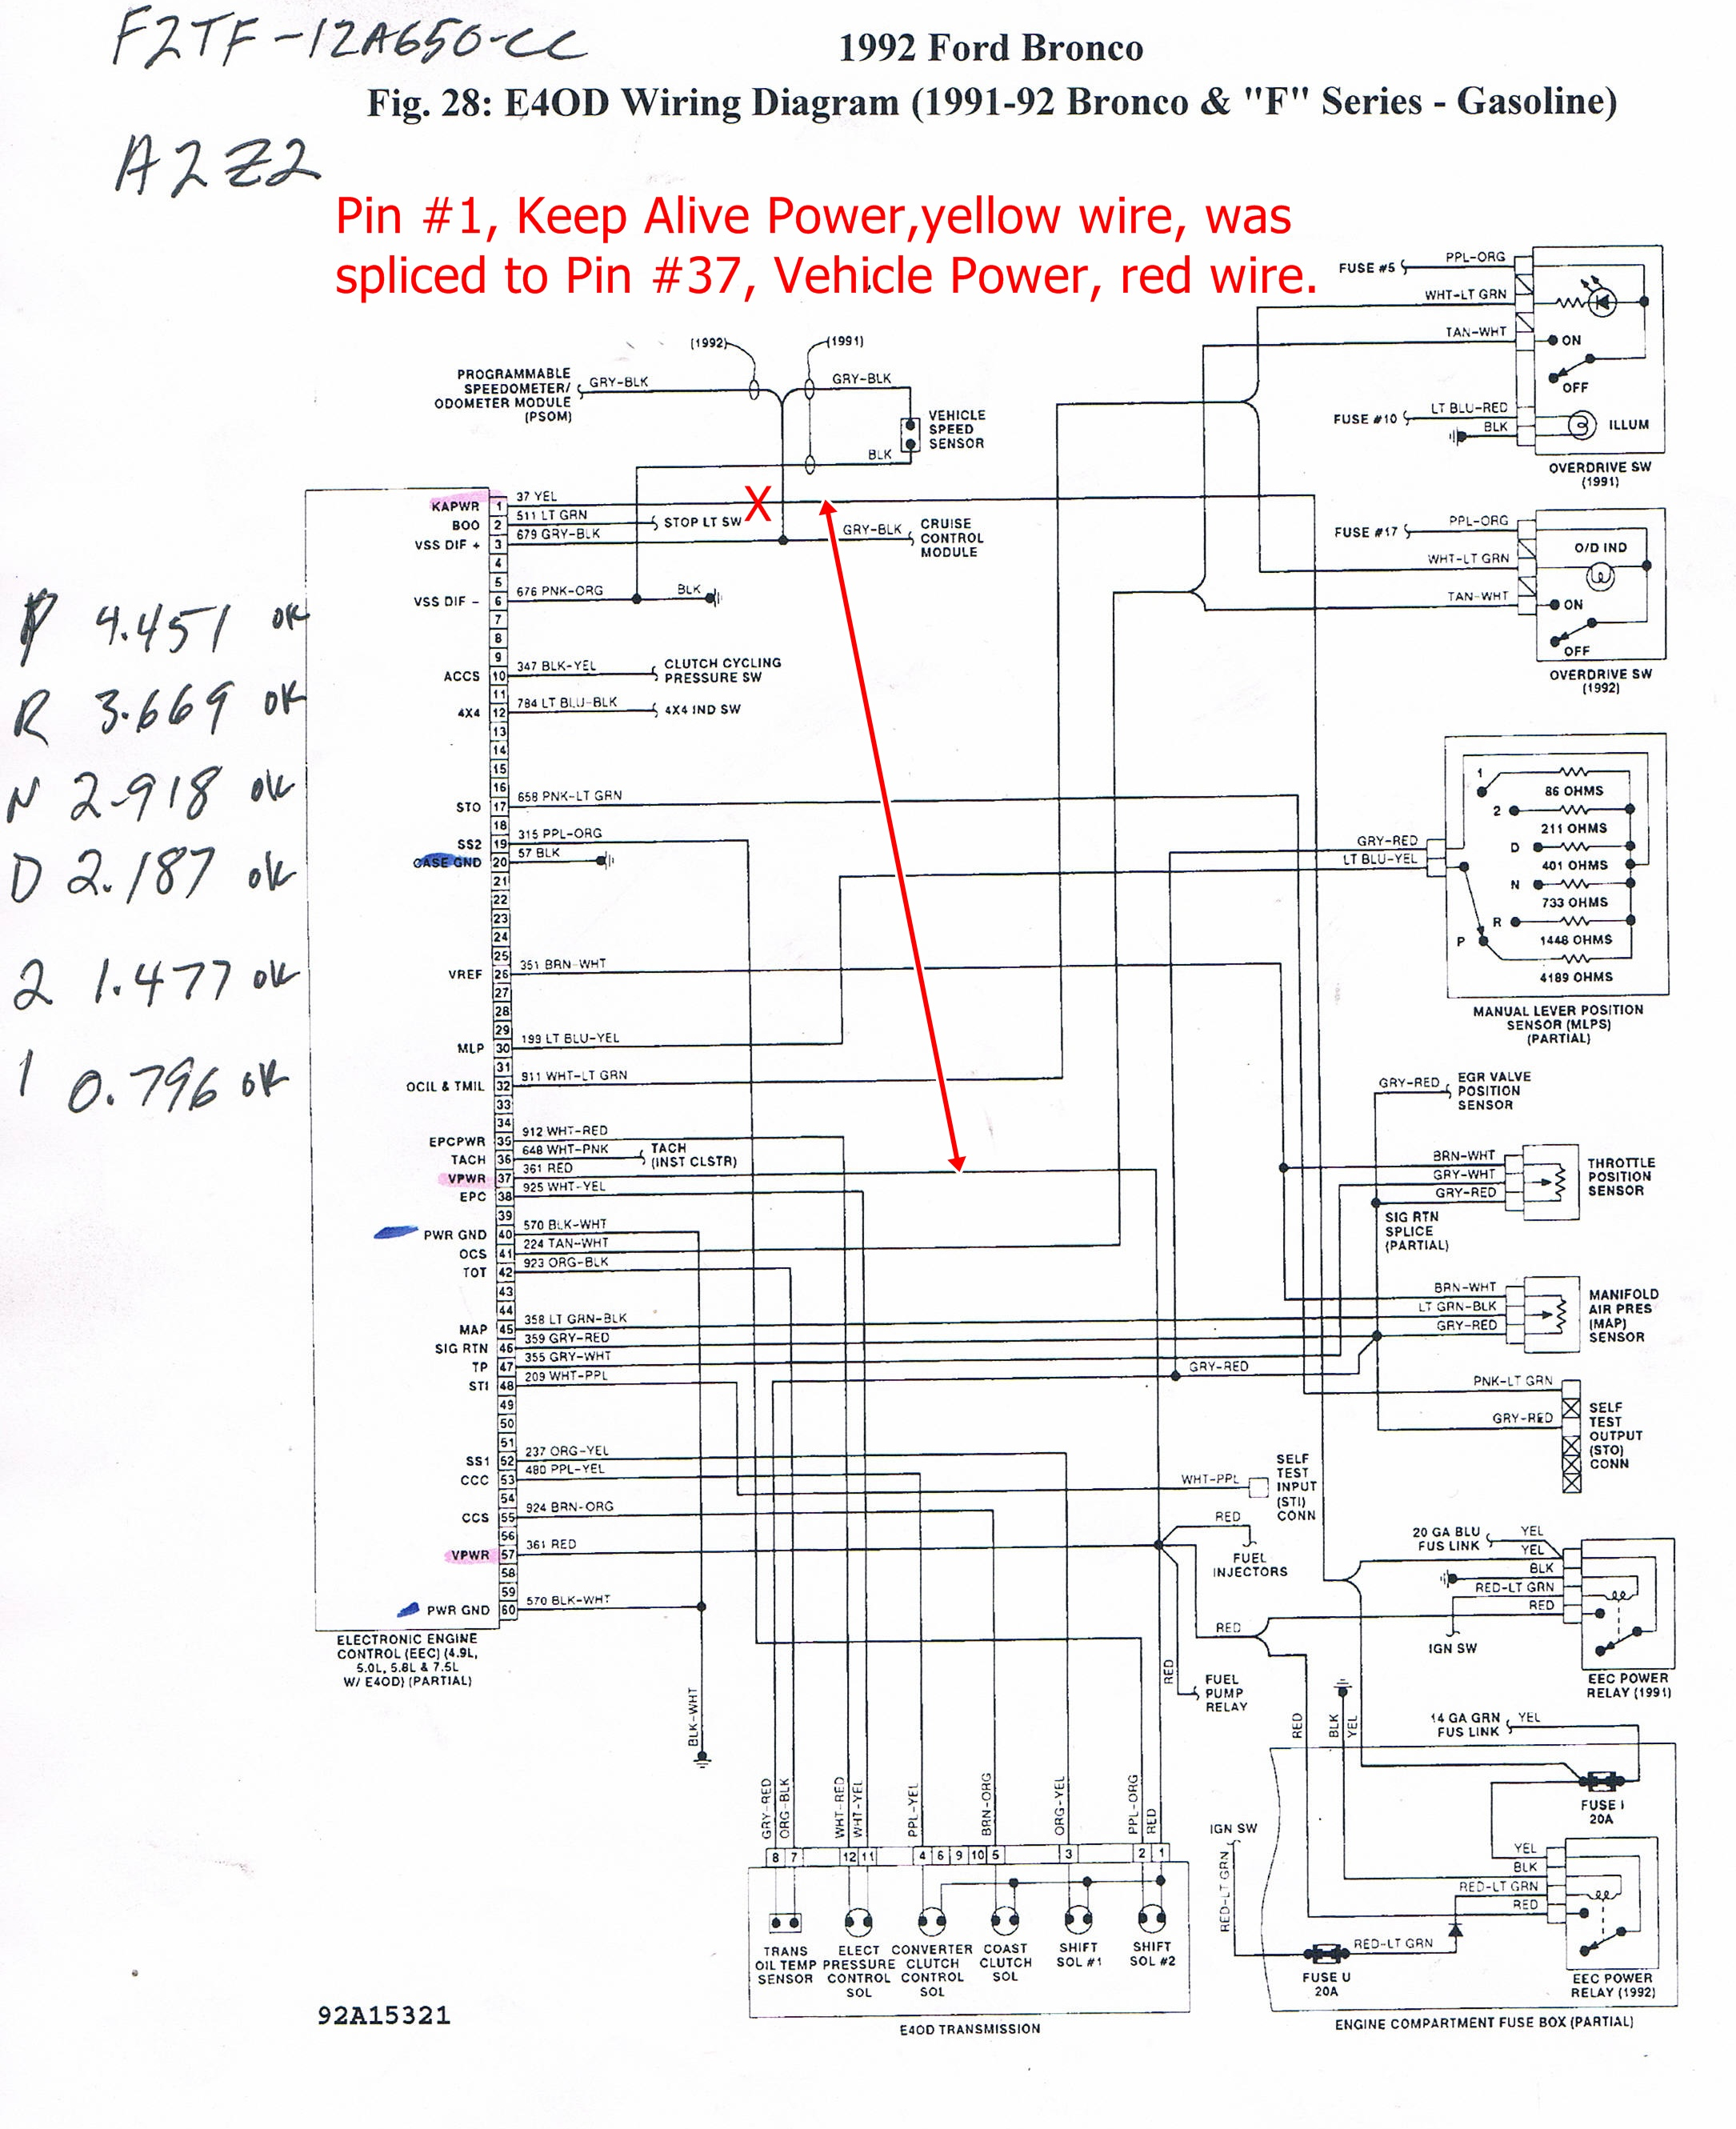 4r44e Solenoid Valve Wiring Diagram Data Asco Internal For Light Switch U2022 Rh Lomond Tw Air Sprinkler